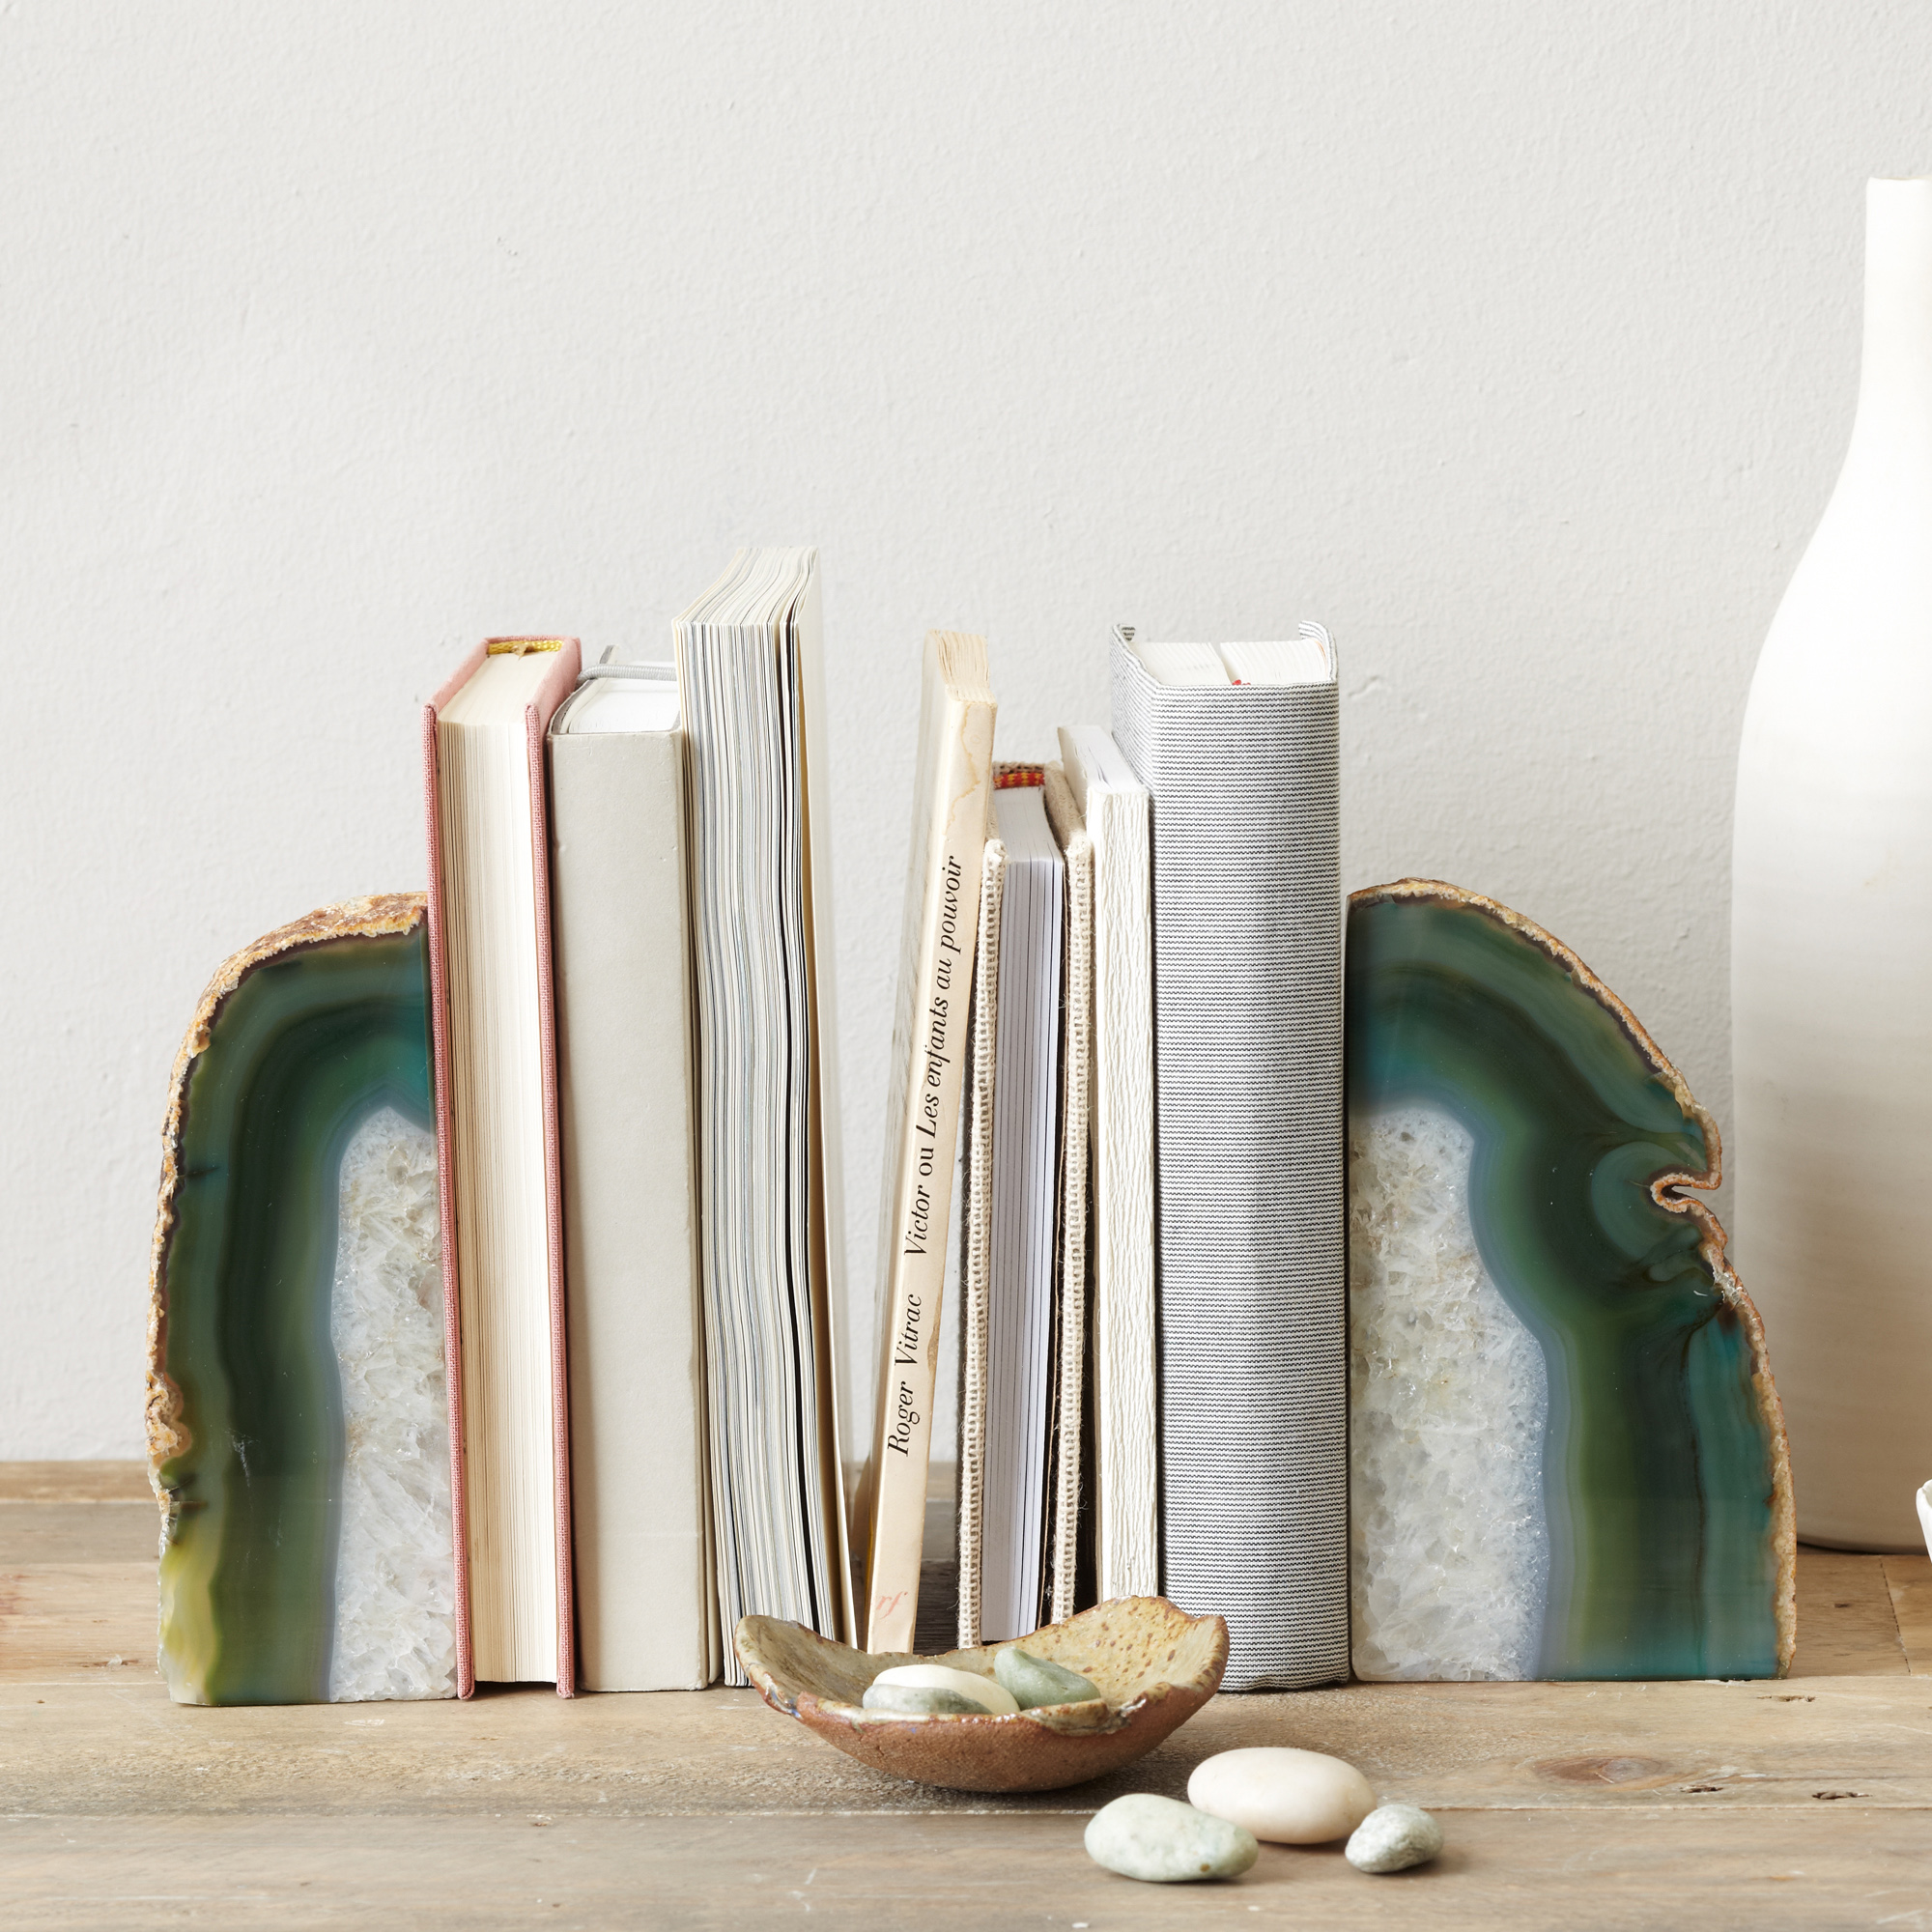 Agate Bookends, £19-£24, www.westelm.co.uk